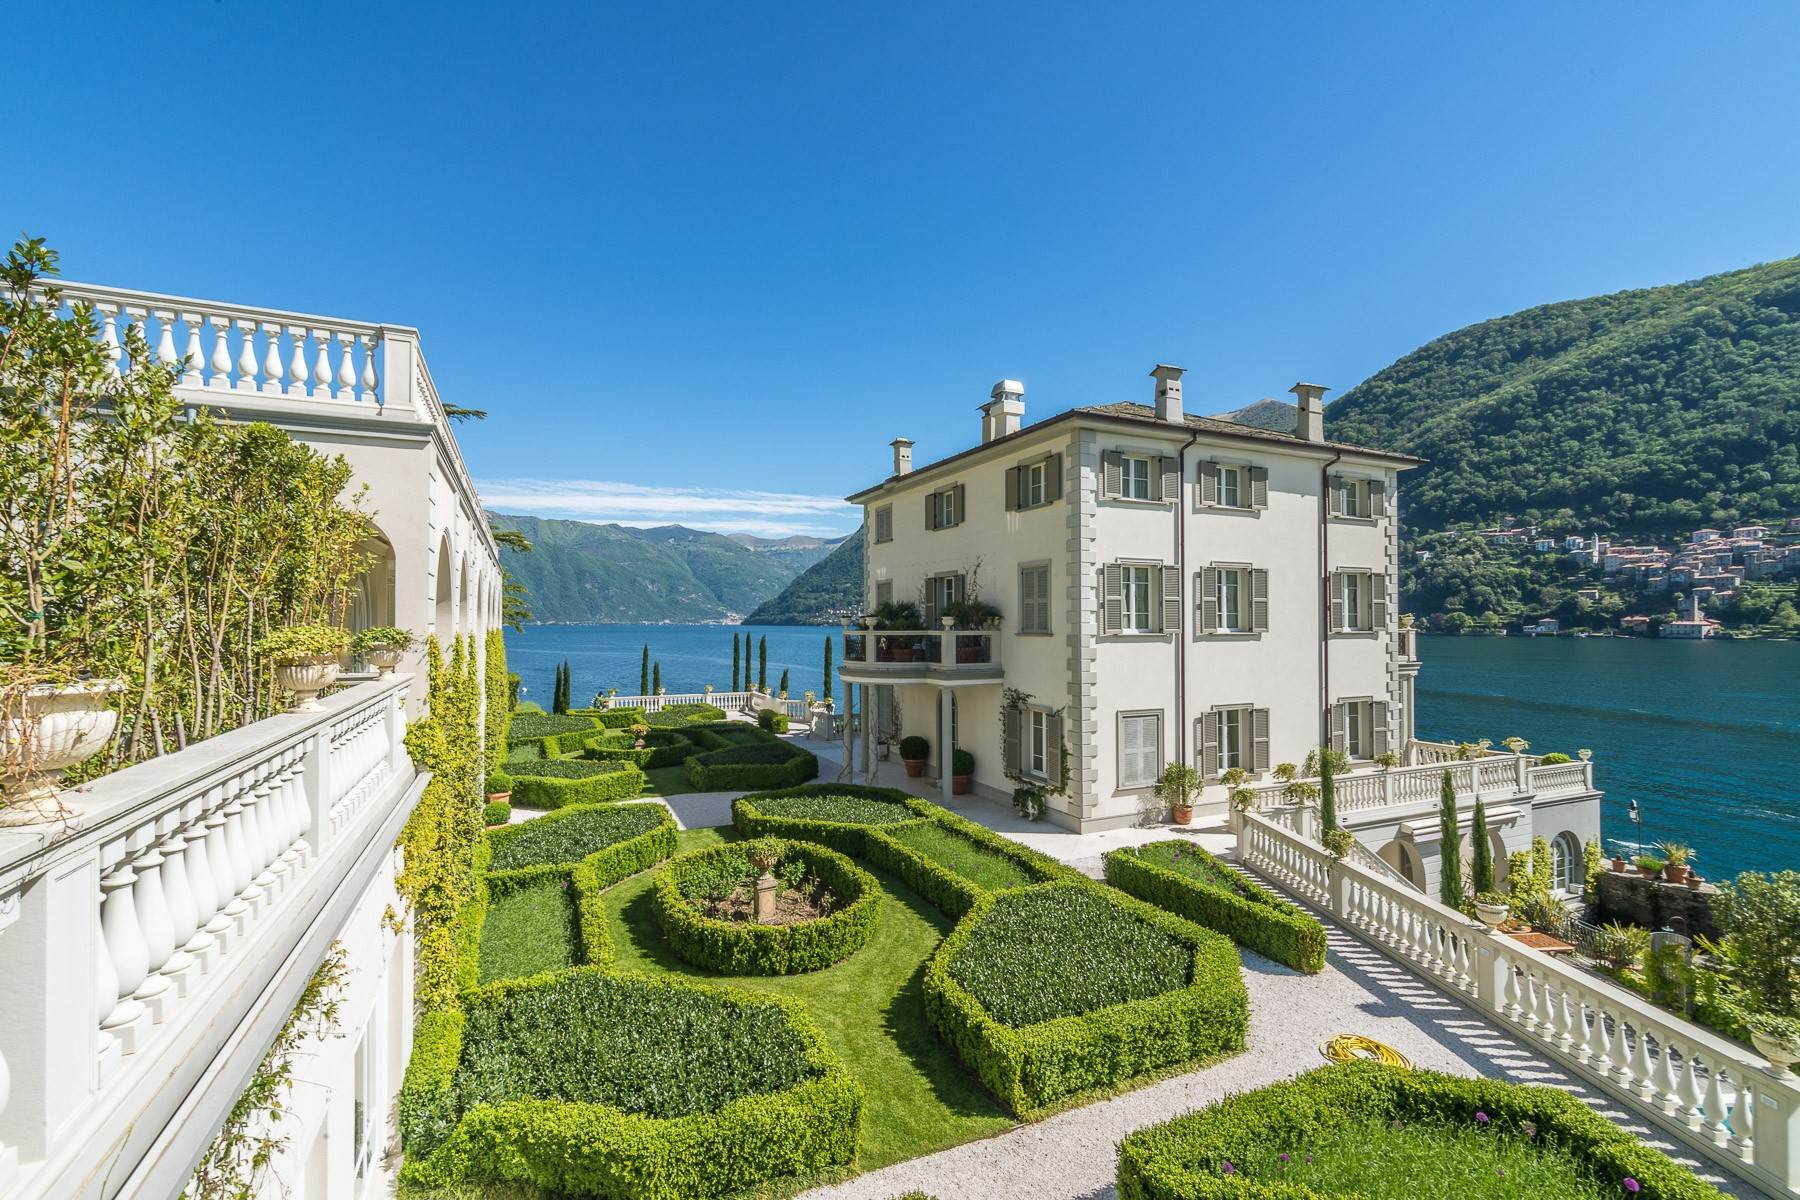 19. Other Residential Homes at Laglio, Como, Italy